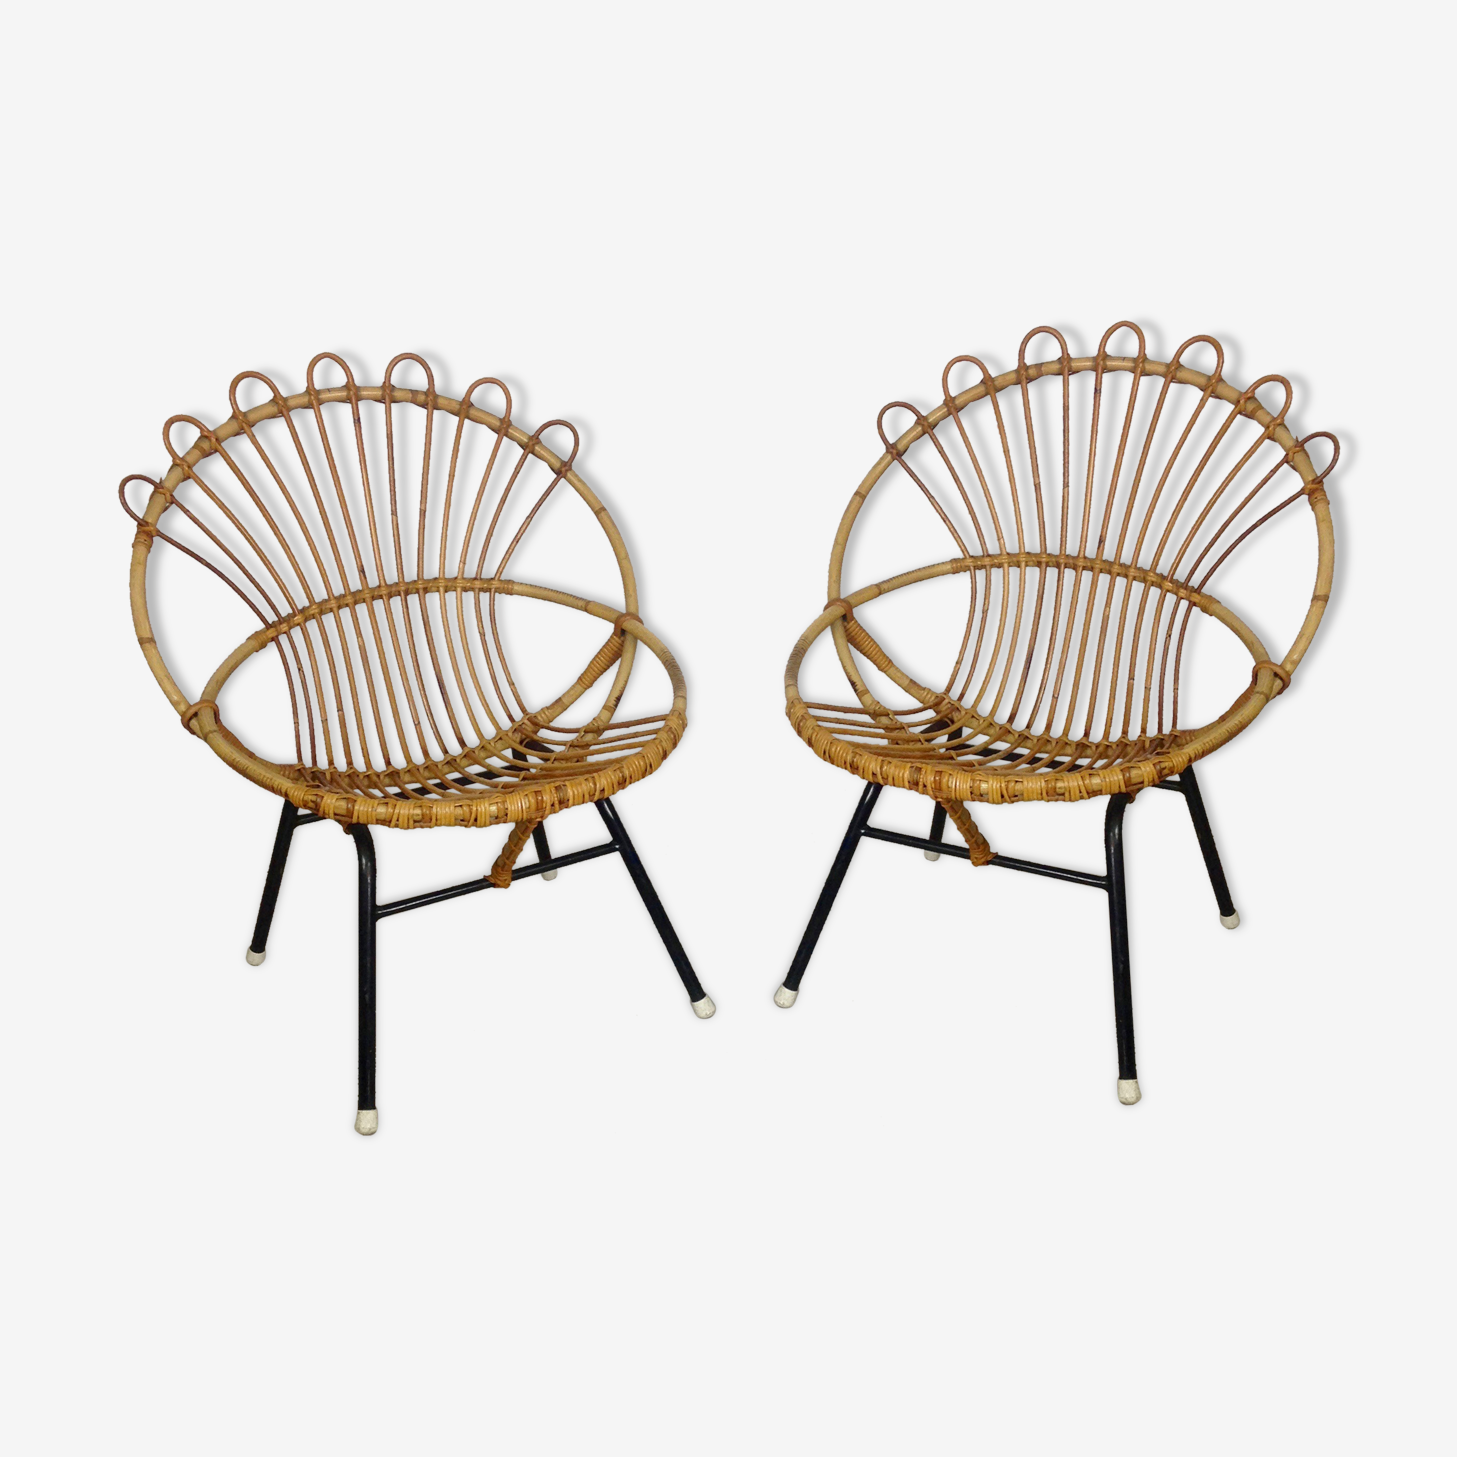 Pair of rattan chairs with black metal of the early 1960s base